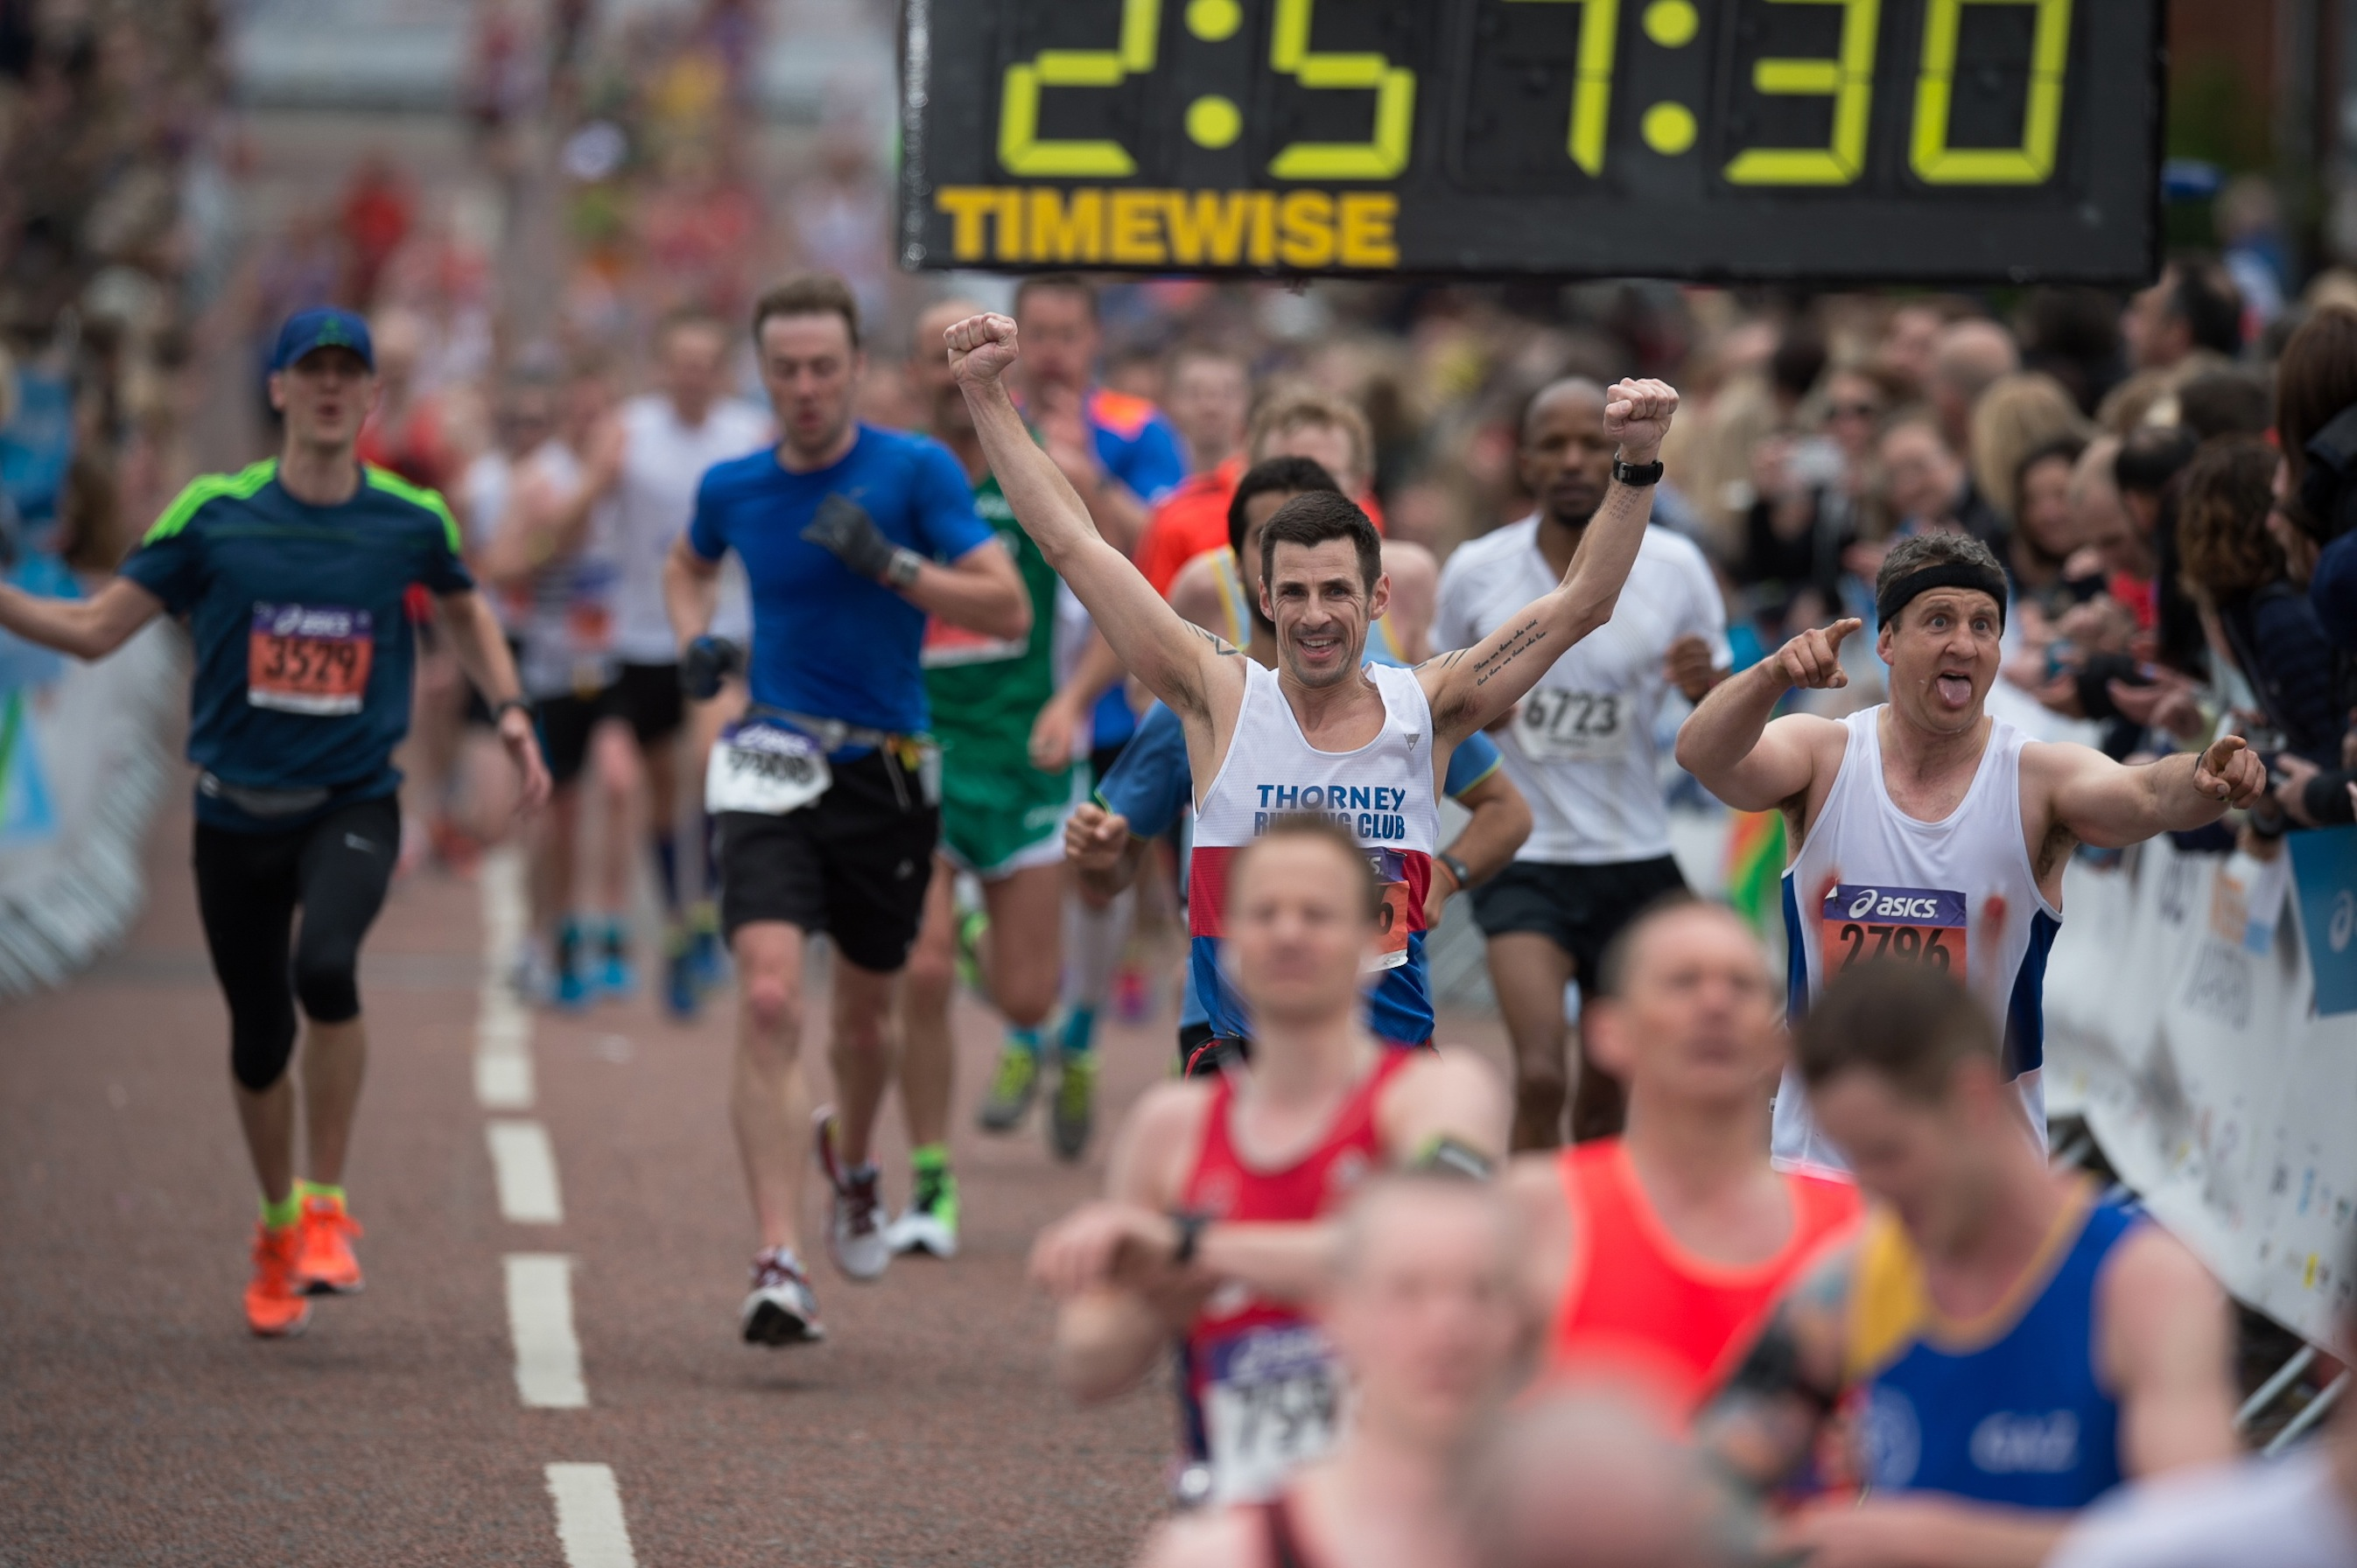 Group of men running the Manchester Marathon